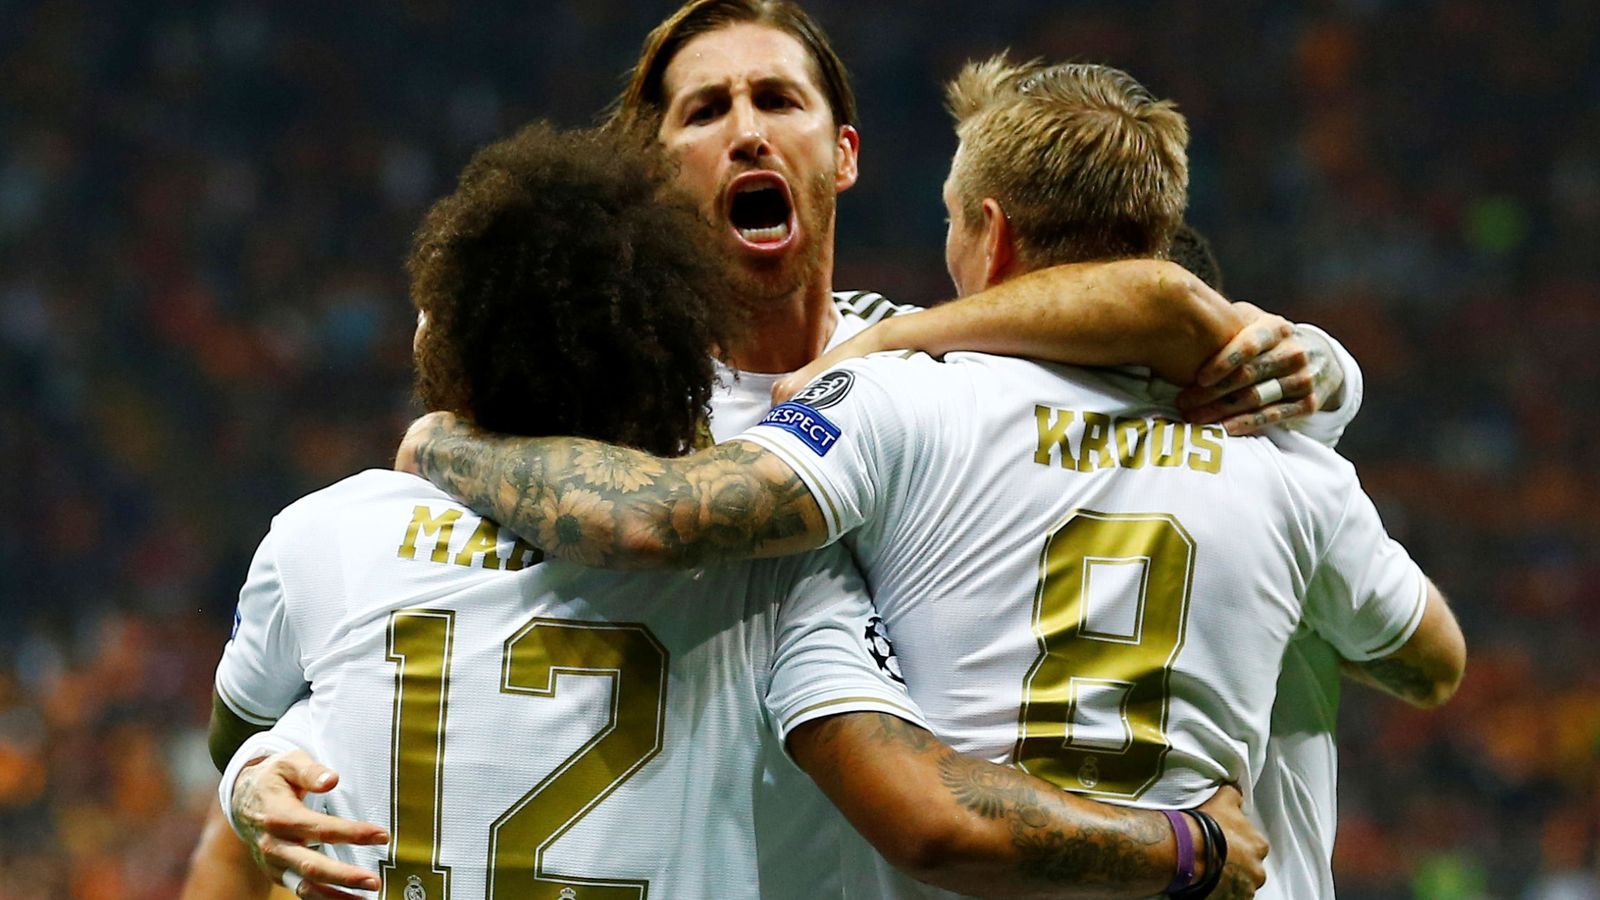 Foto: Champions league - group a - galatasaray v real madrid